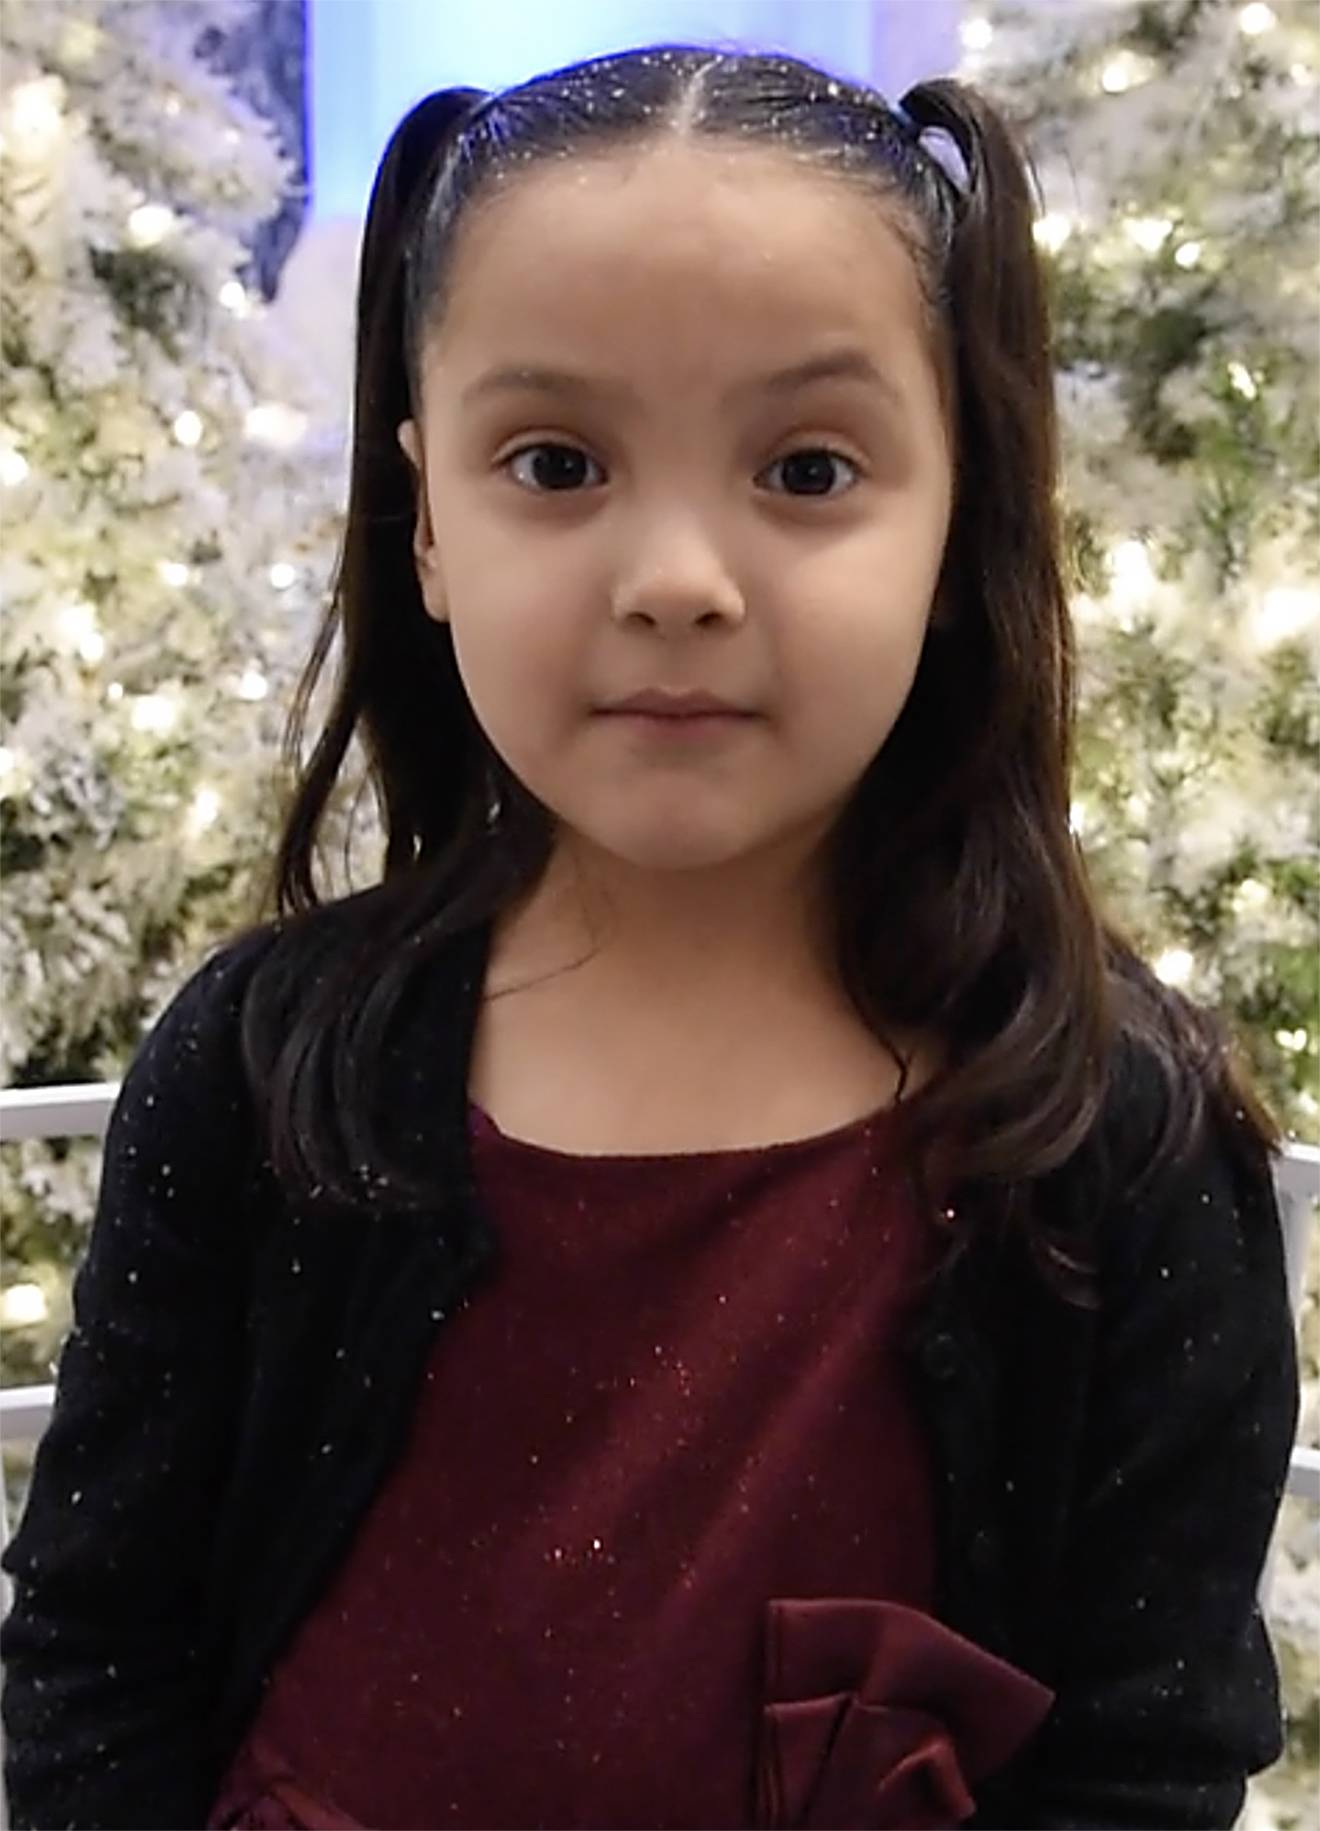 A reindeer is what Lizet Peralta, 5, of Lake in the Hills, hopes Santa will bring for her. She told him her wish at the Woodfield Mall in Schaumburg.